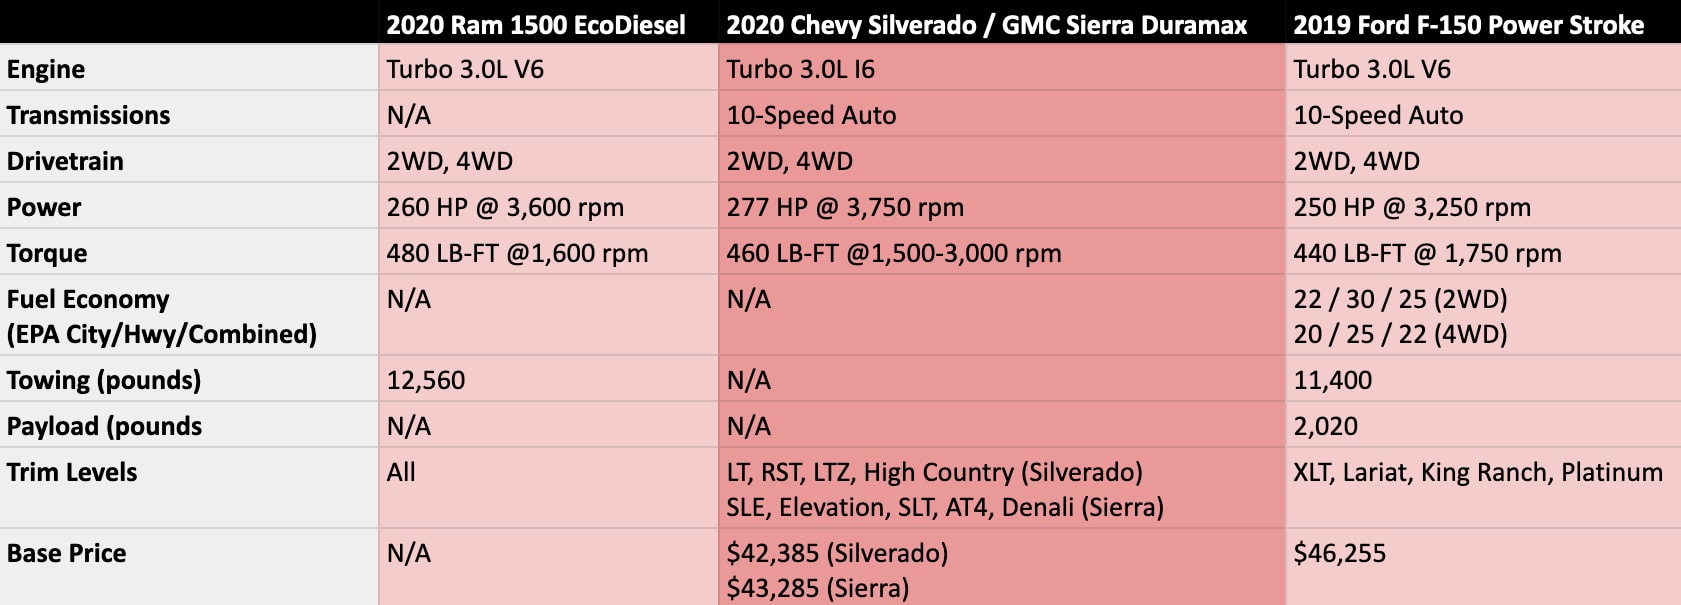 2020 Ram 1500, Chevy Silverado, 2019 Ford F-150 diesels compared